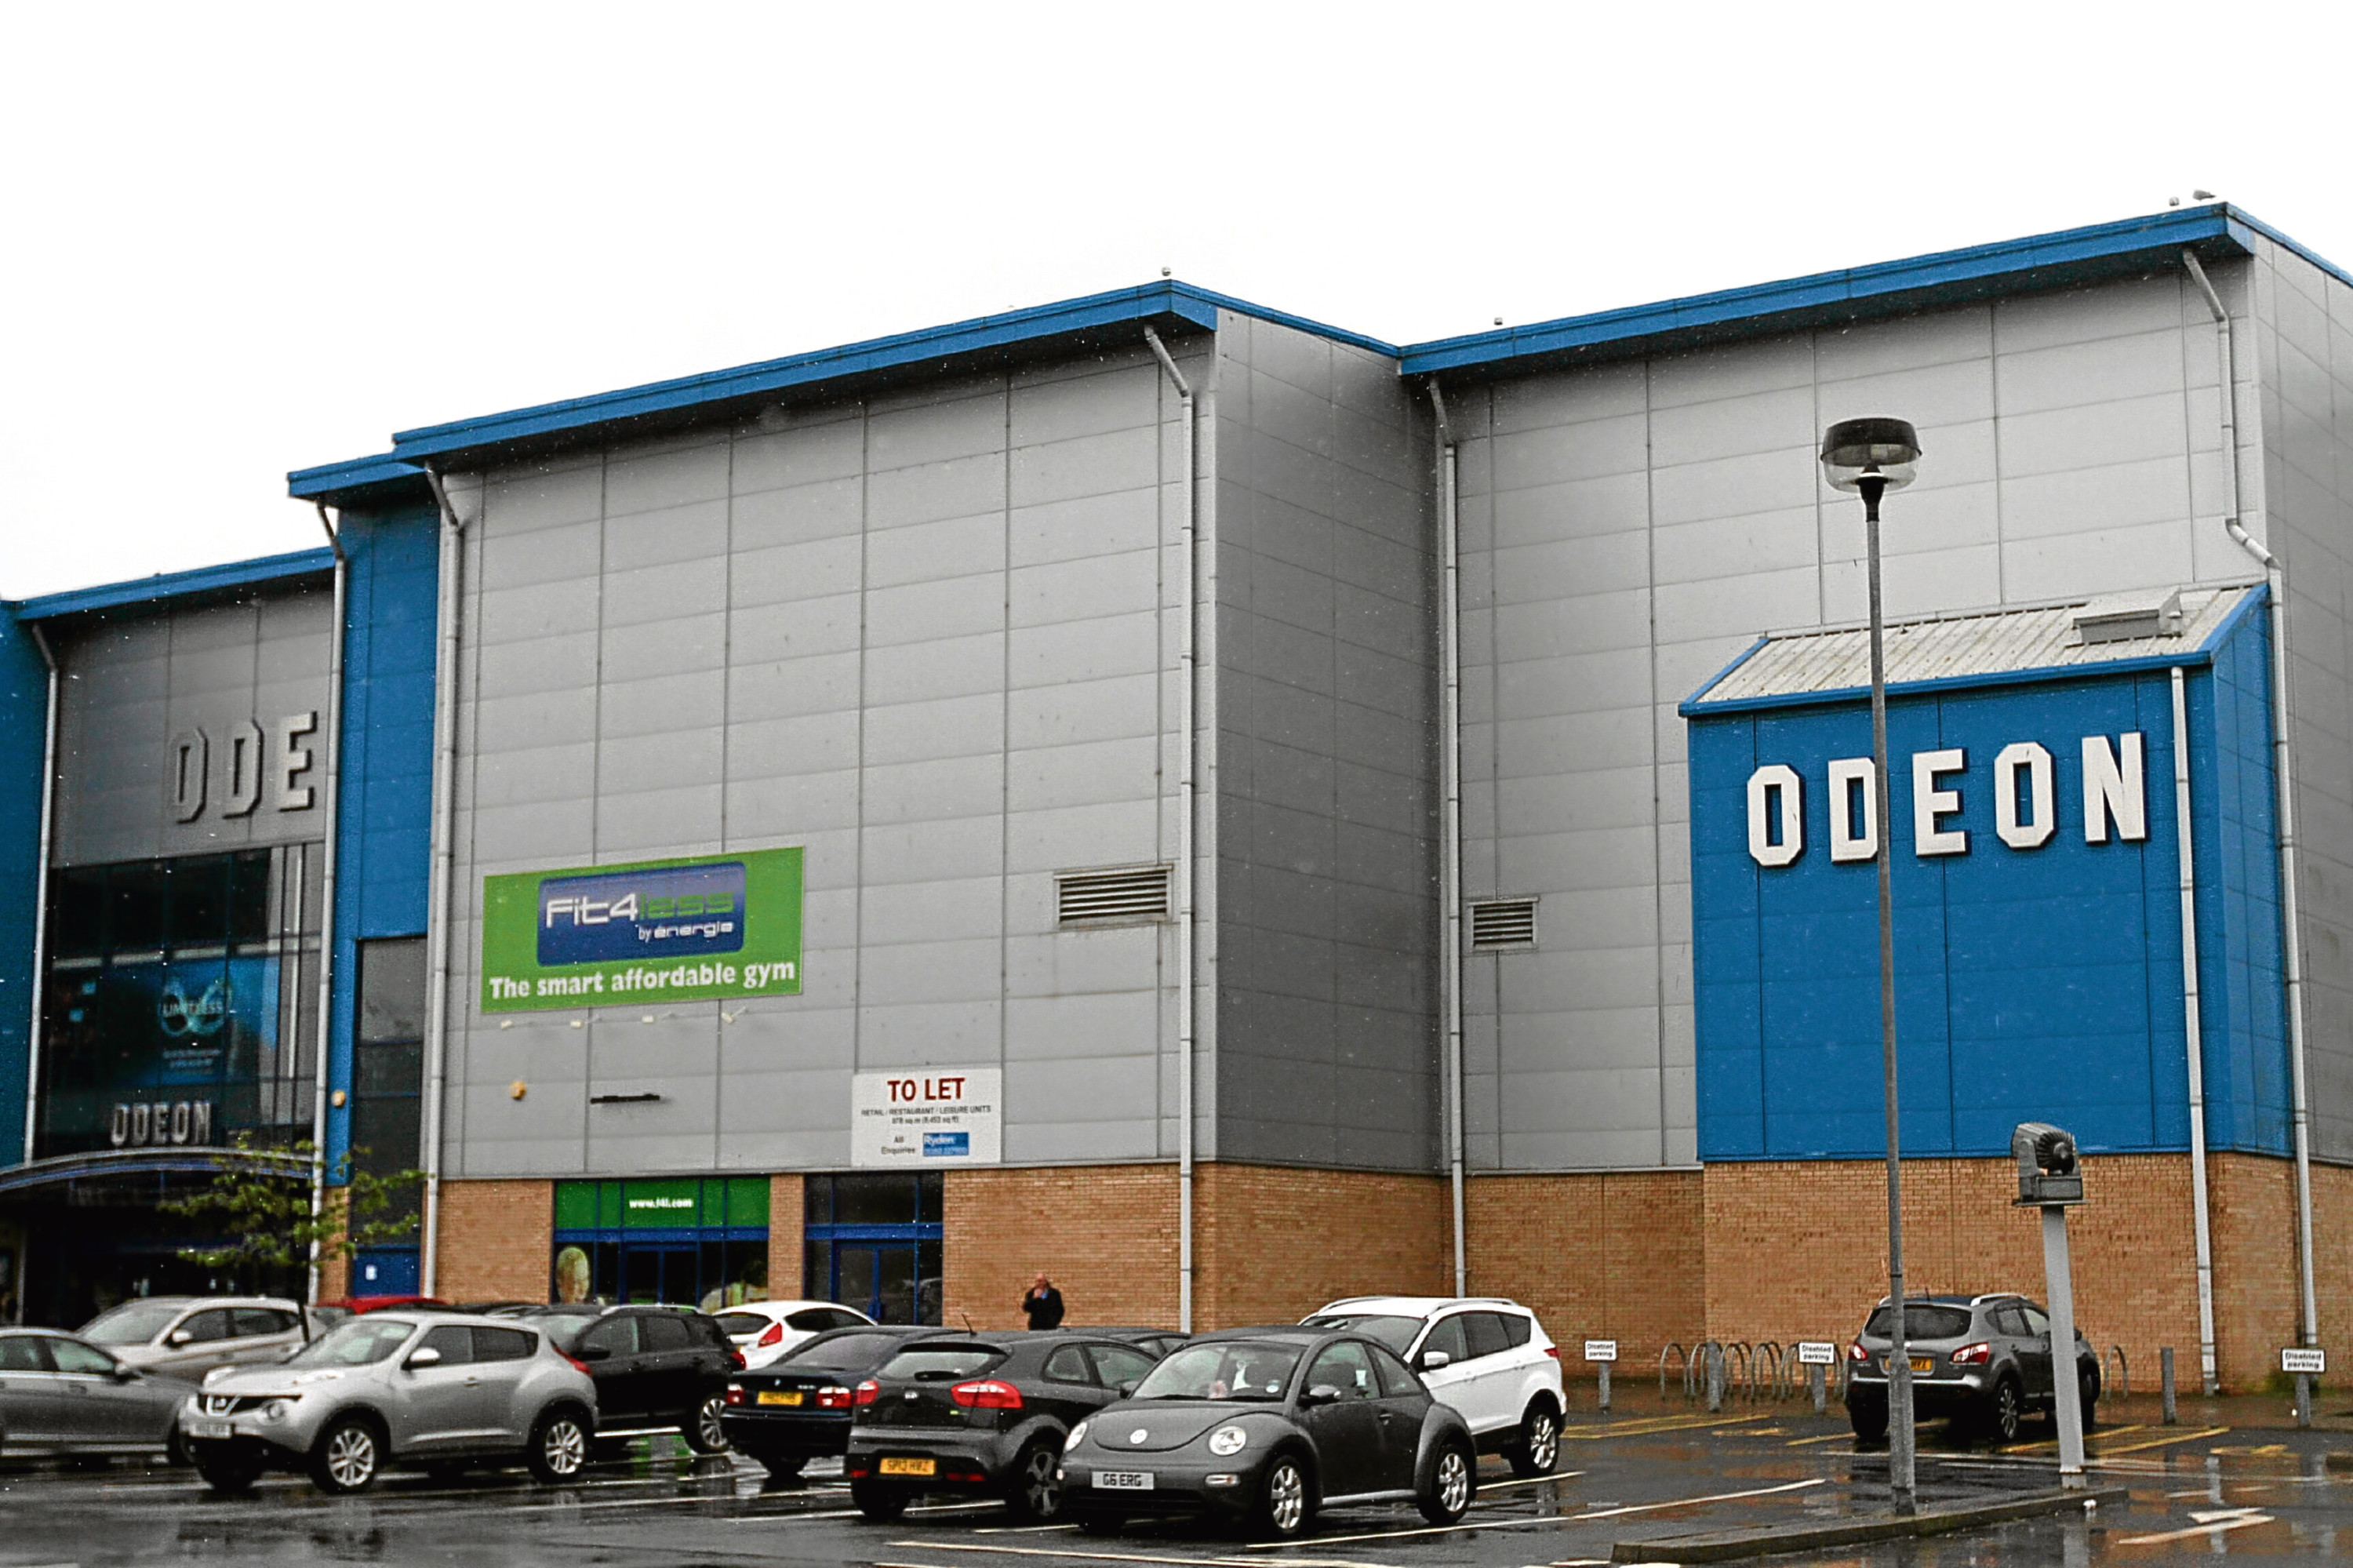 The Odeon cinema in Douglas